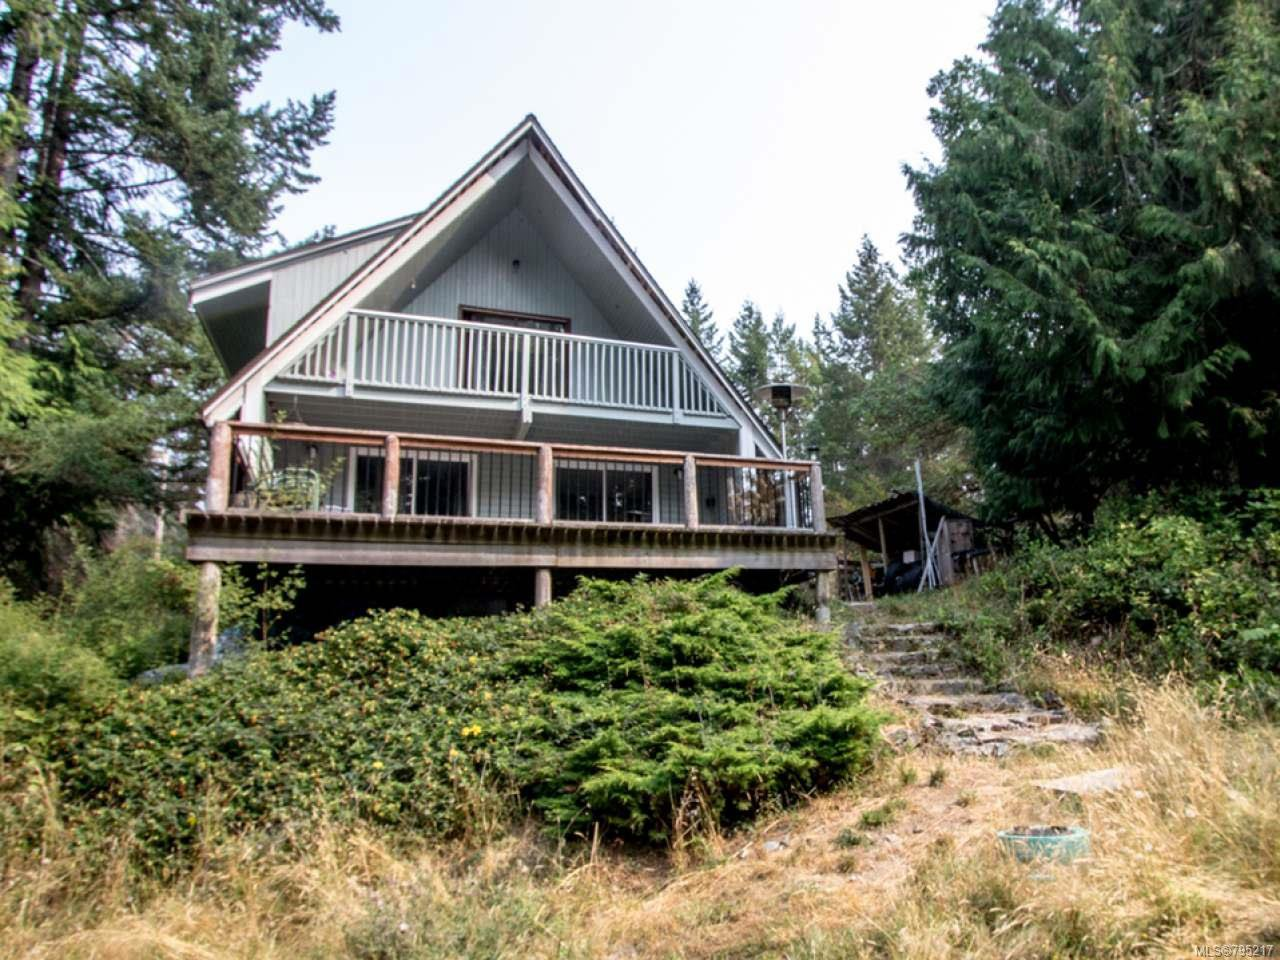 Main Photo: 2880 Transtide Dr in NANOOSE BAY: PQ Nanoose House for sale (Parksville/Qualicum)  : MLS®# 795217